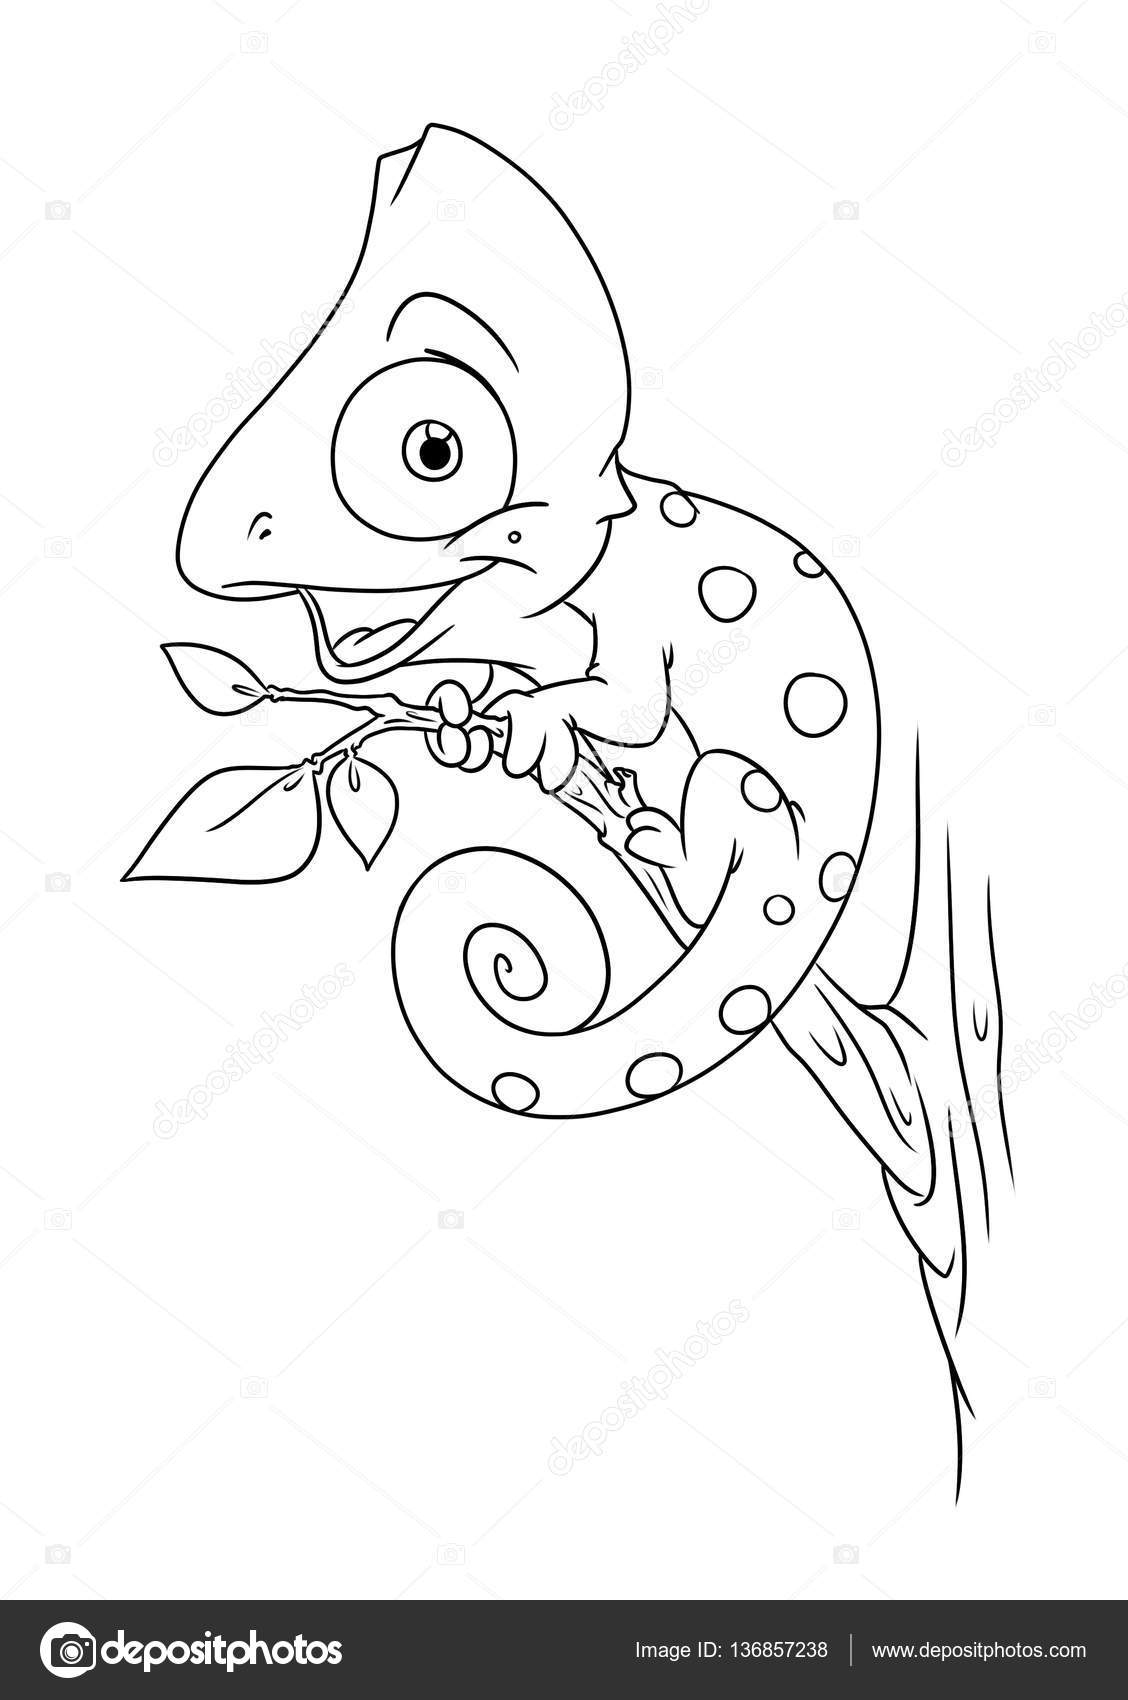 Chameleon Animal Coloring Pages Cartoon Stock Photo Image By C Efengai 136857238